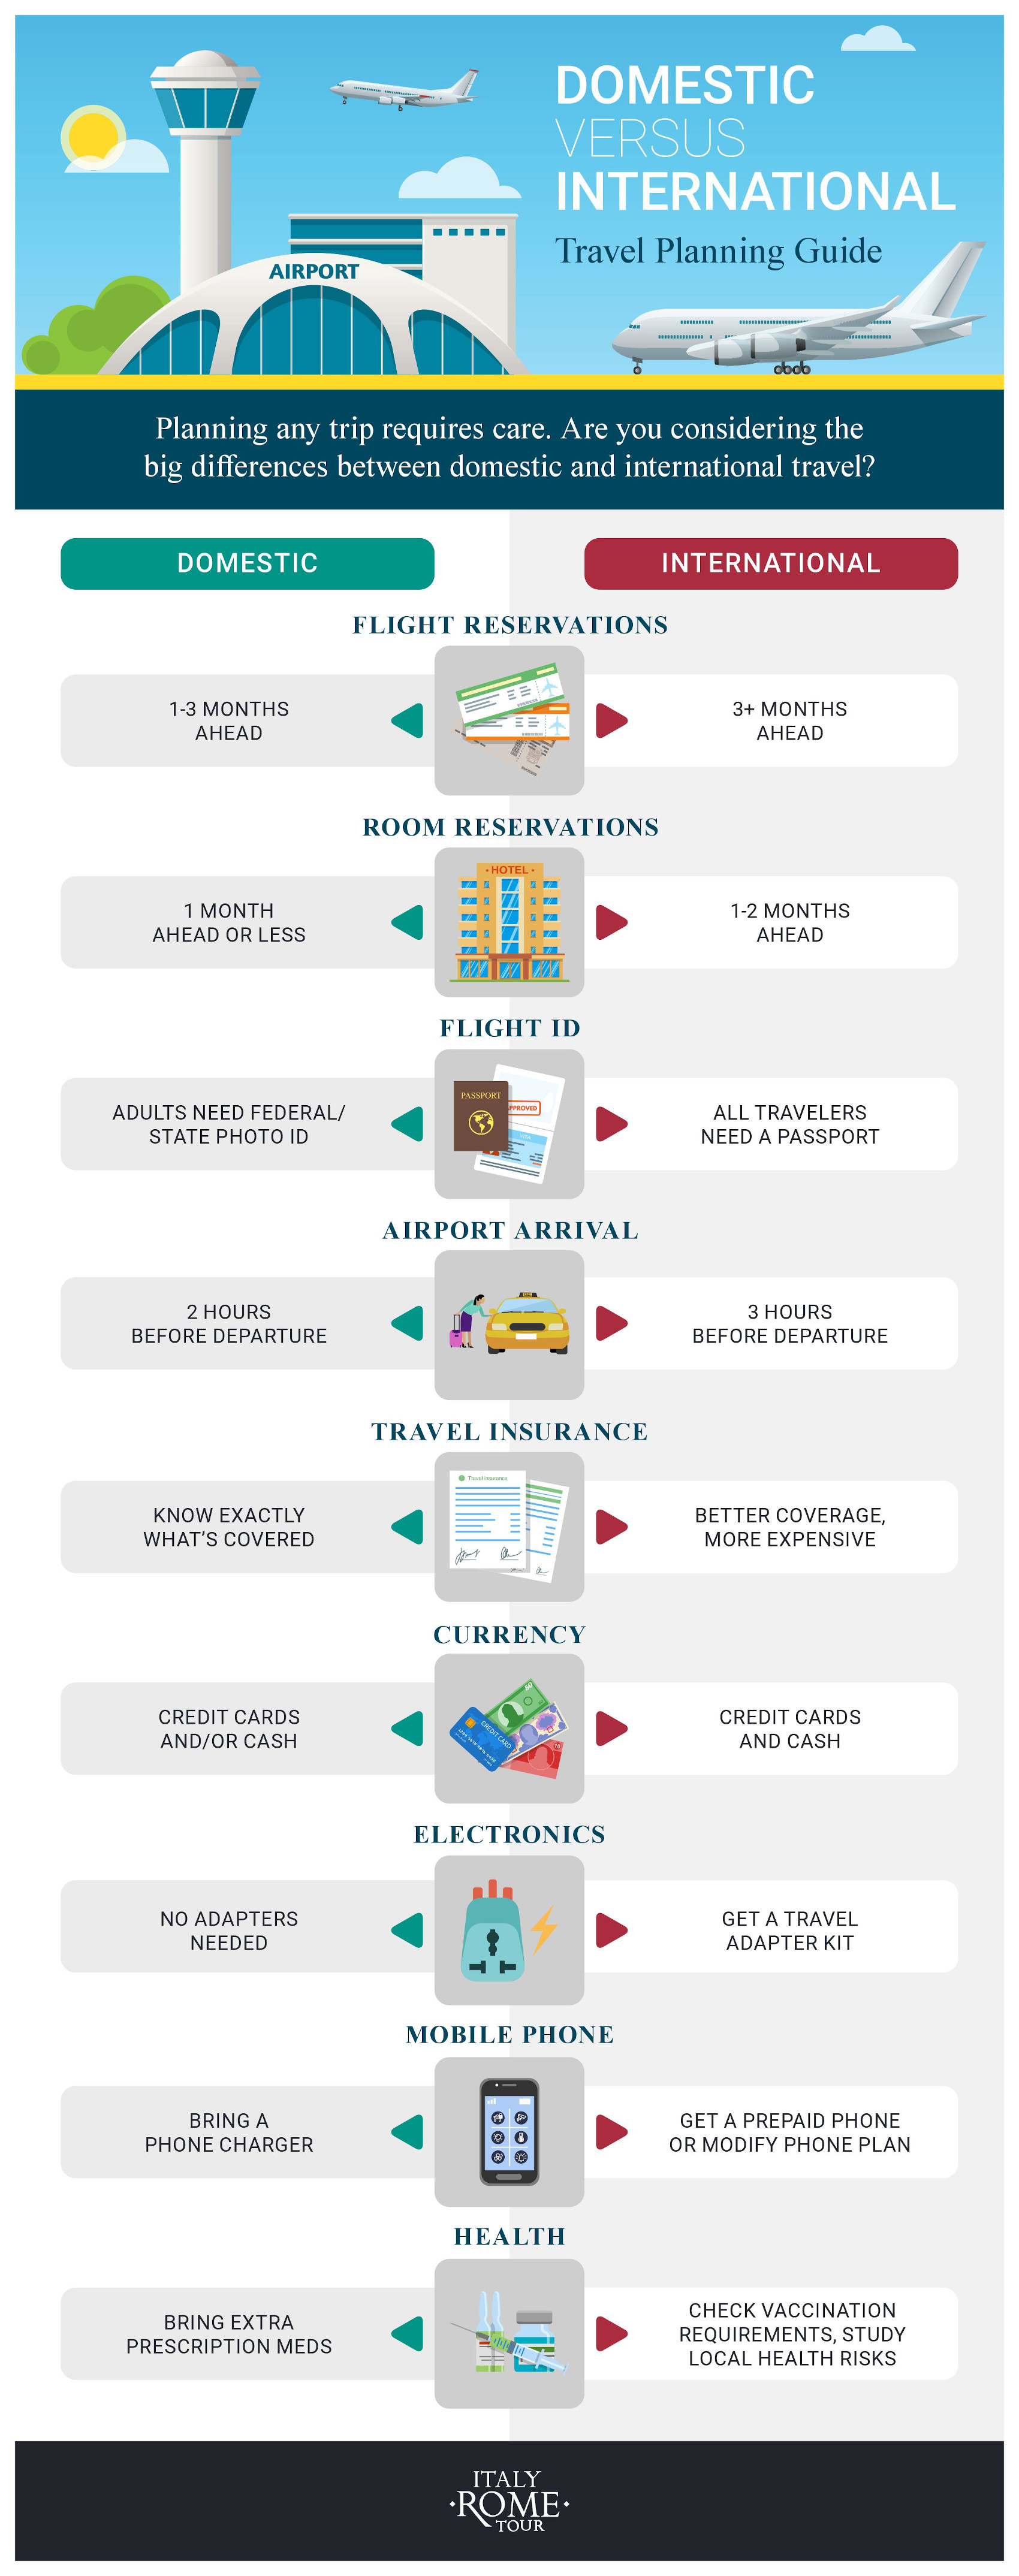 Domestic vs International Travel